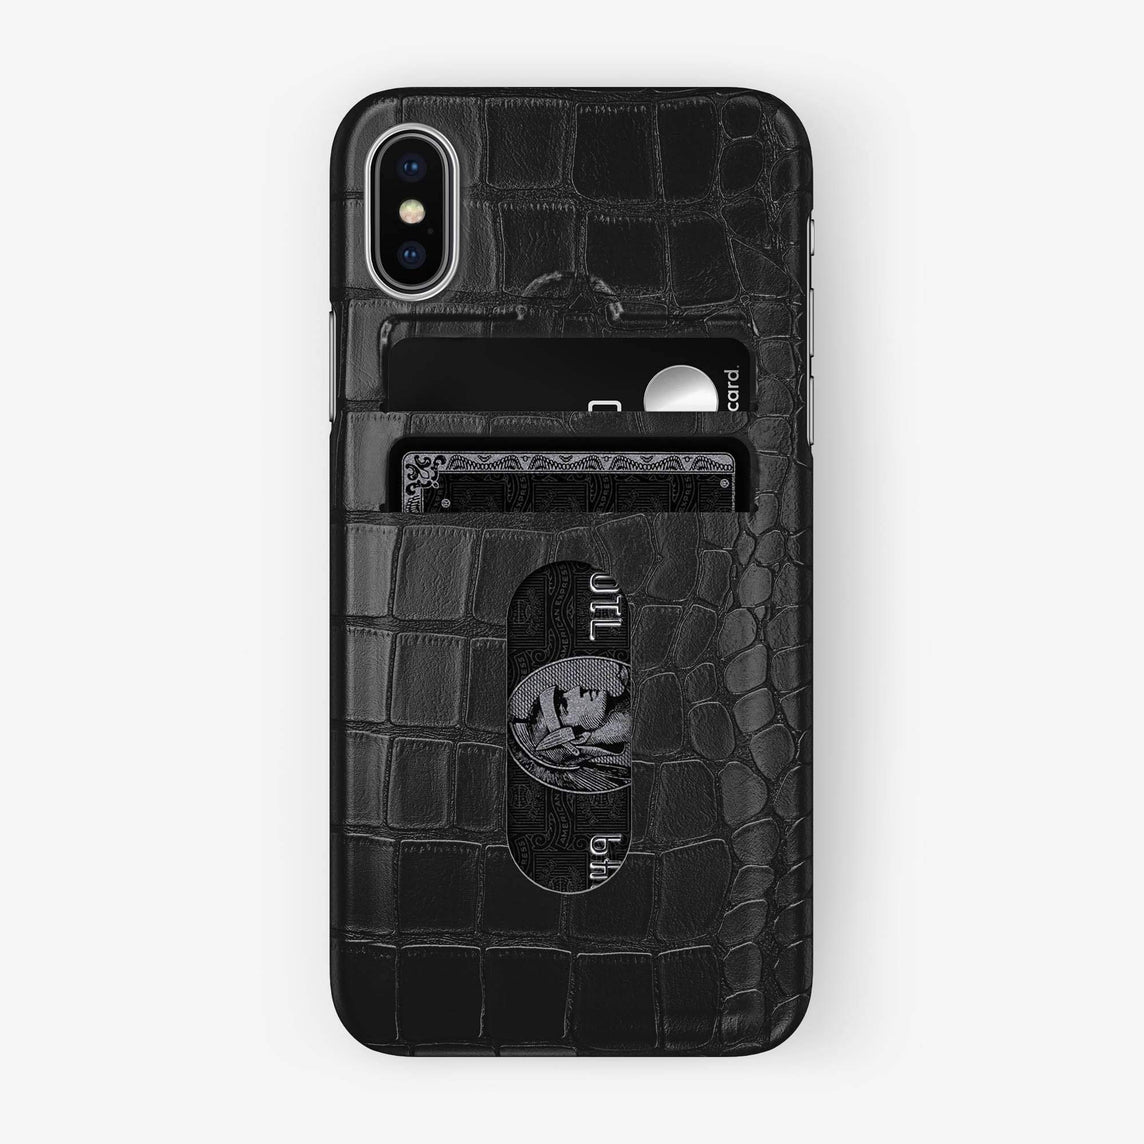 Alligator Card Holder Case iPhone Xs Max | Black - Stainless Steel - Hadoro